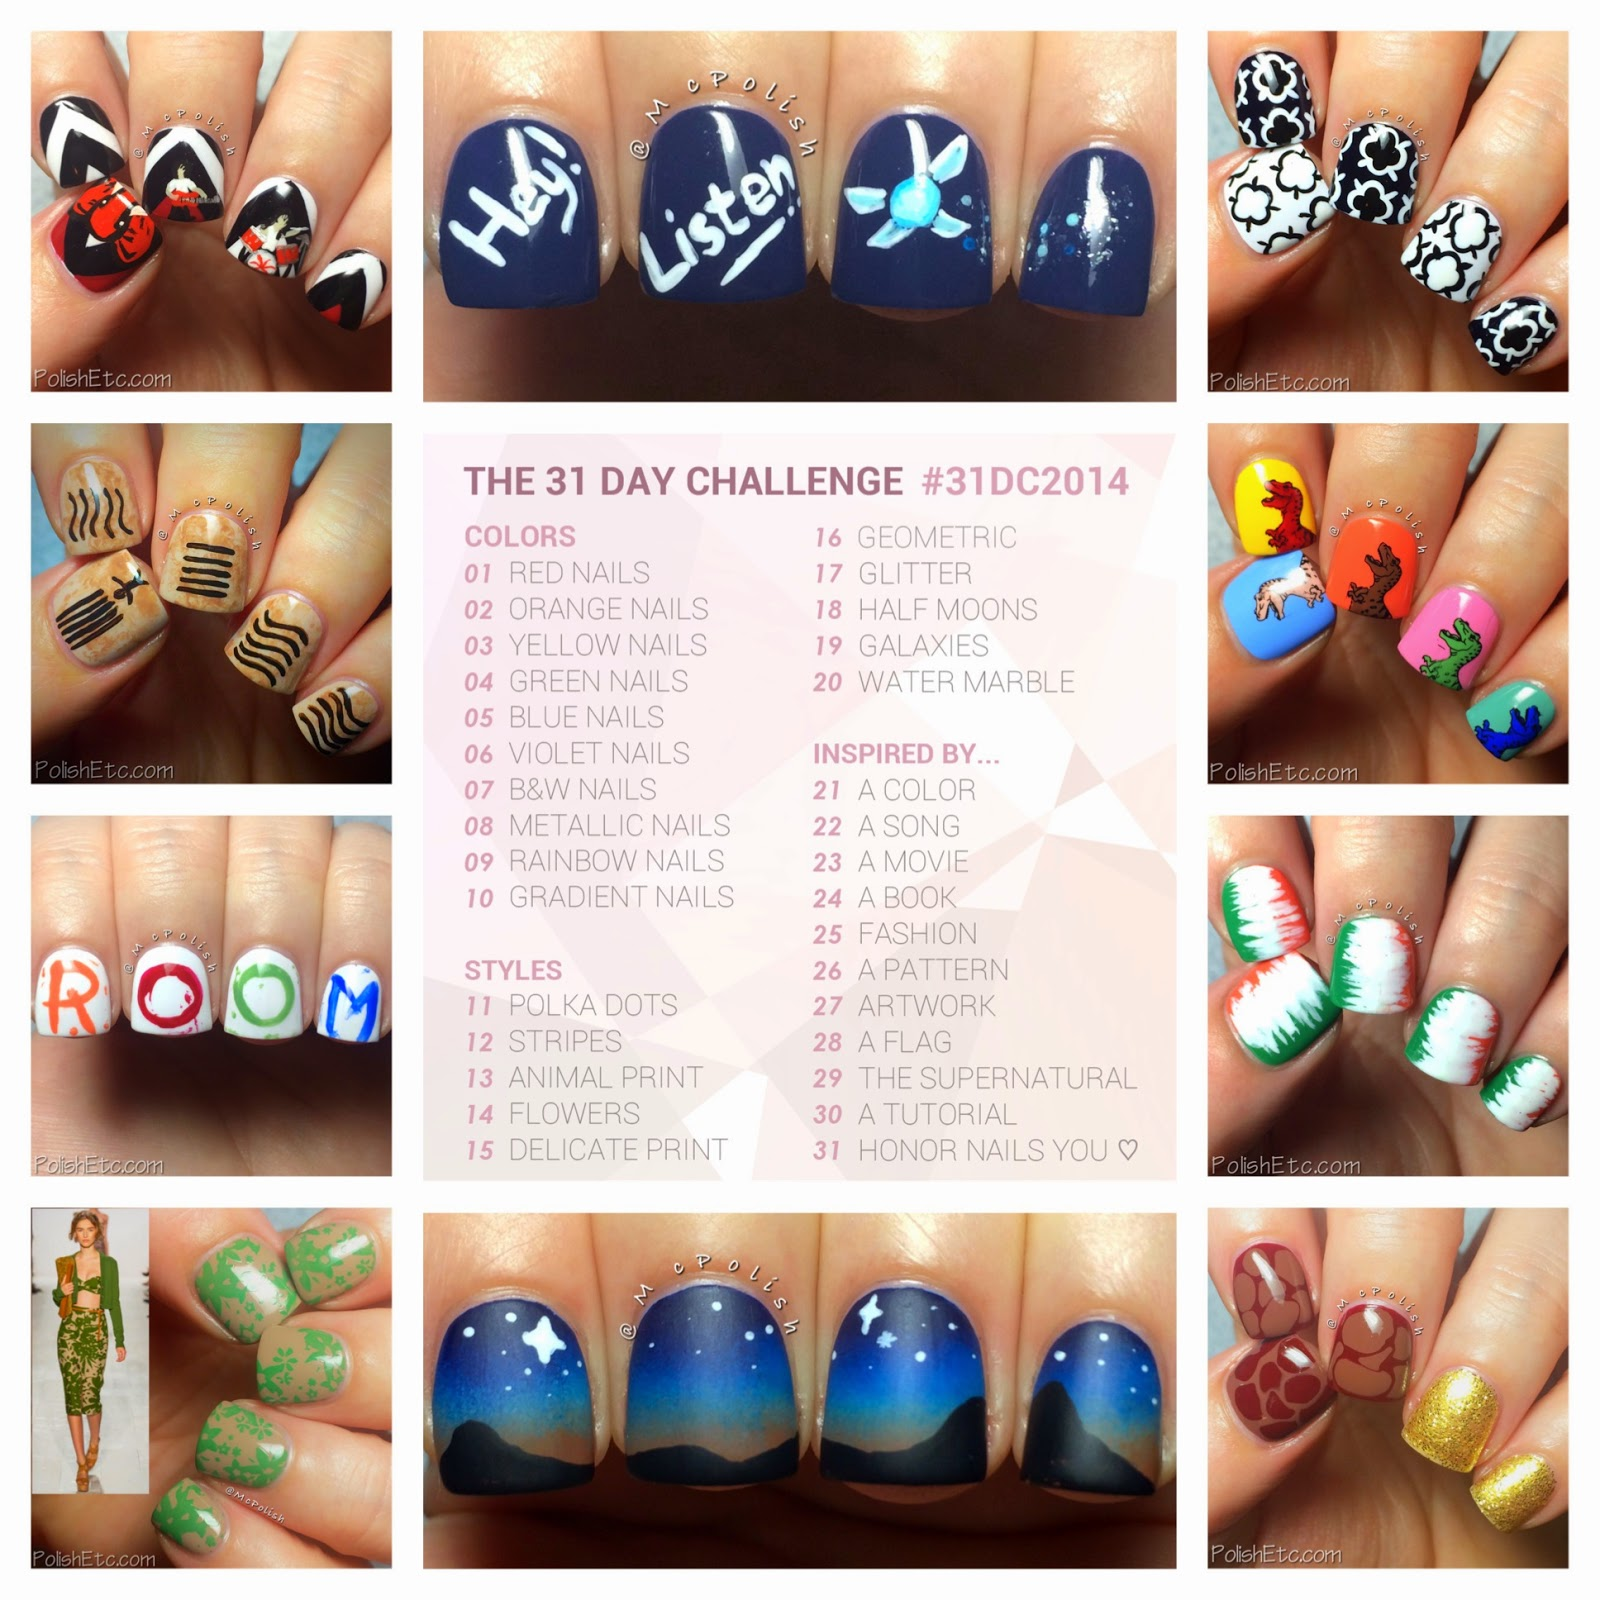 31 Day Nail Art Challenge -#31dc2014 - McPolish